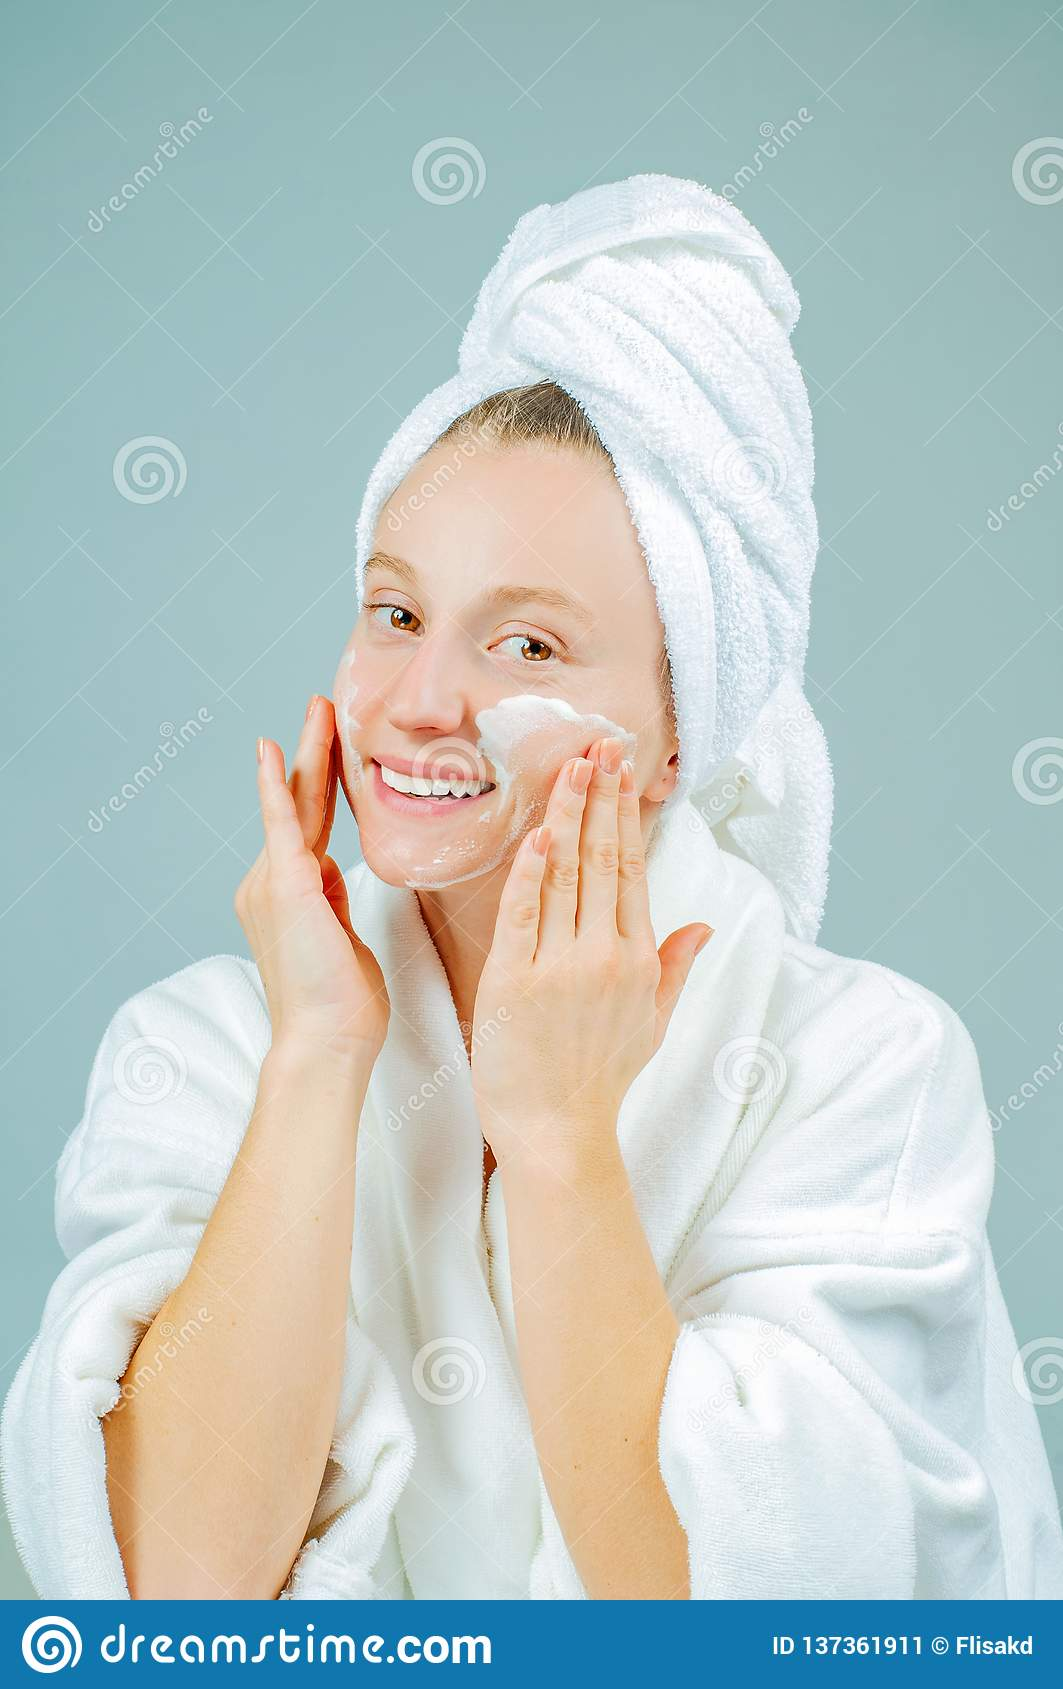 Freshly Moist Youthful Skin